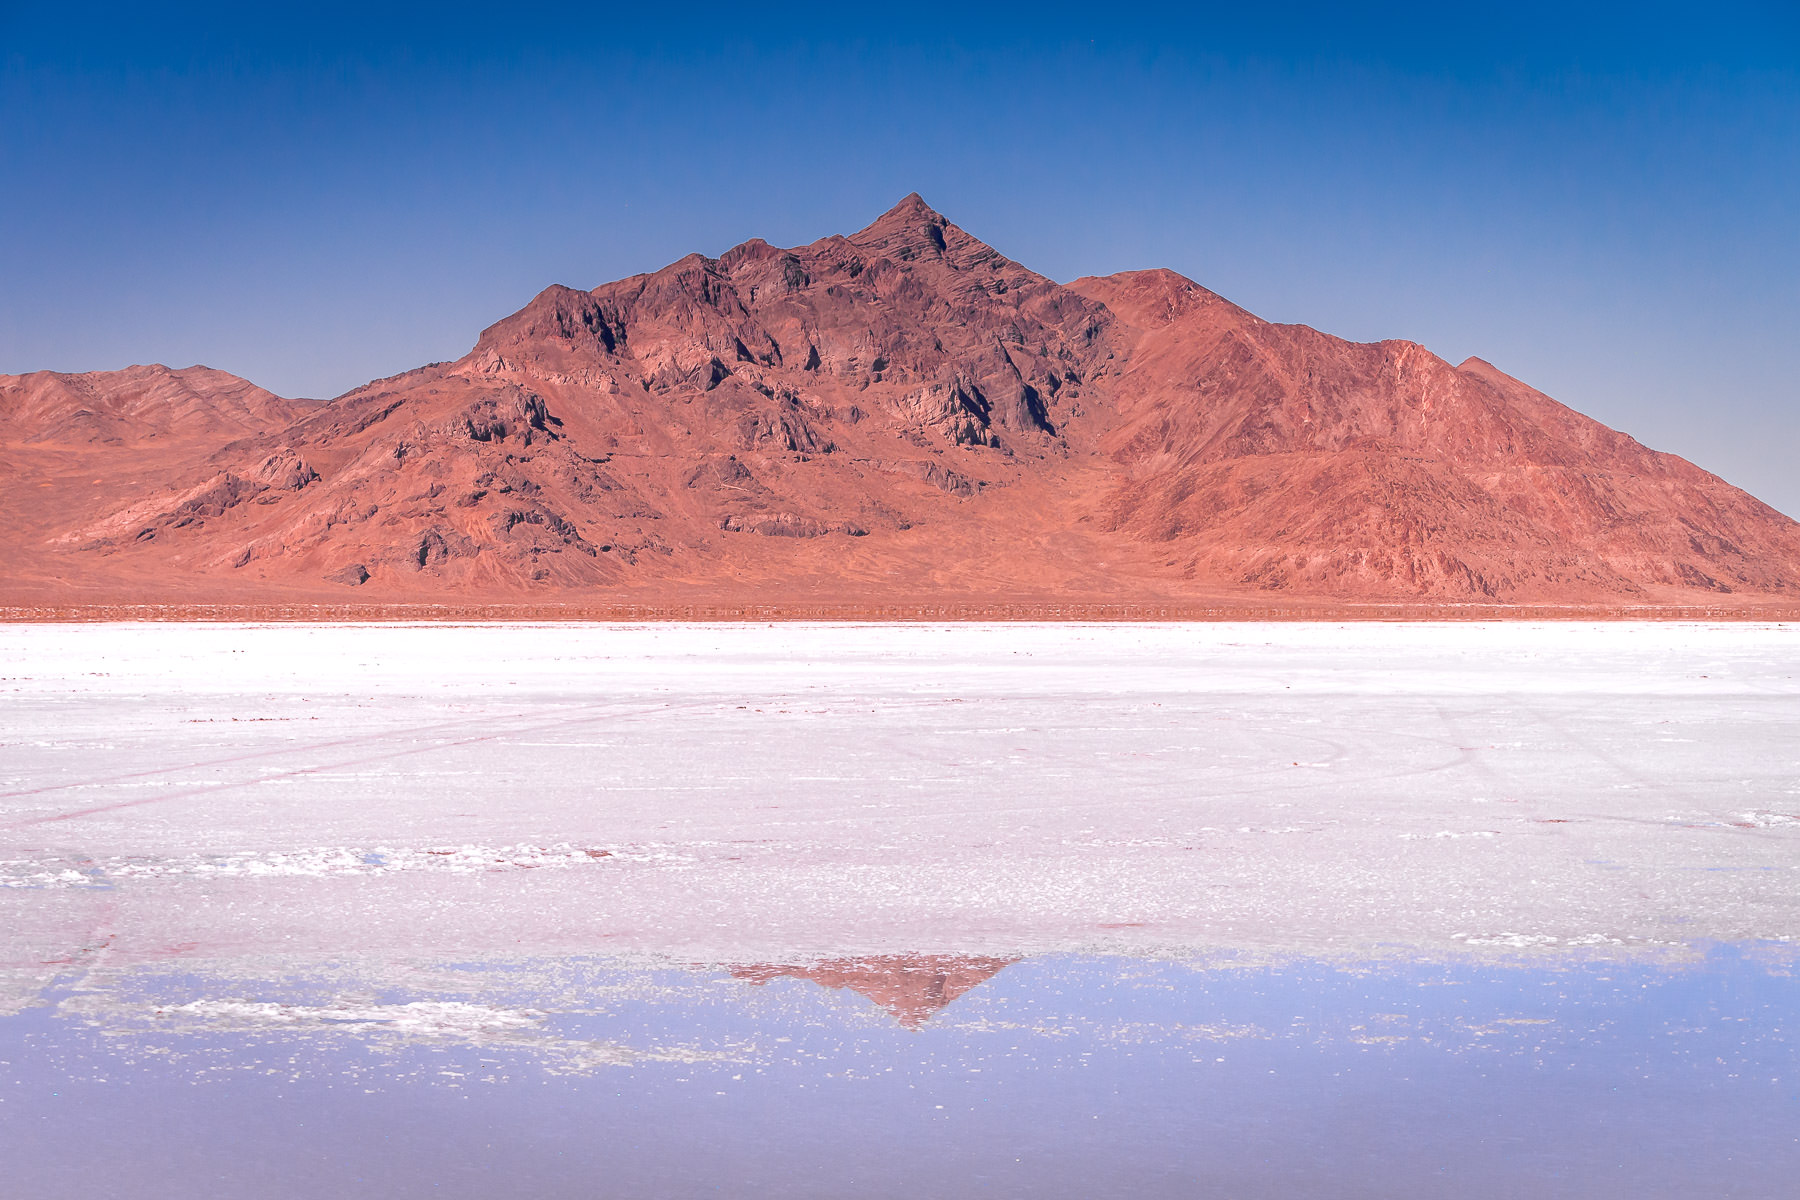 Mountains rise above the desolate Bonneville Salt Flats, Utah.